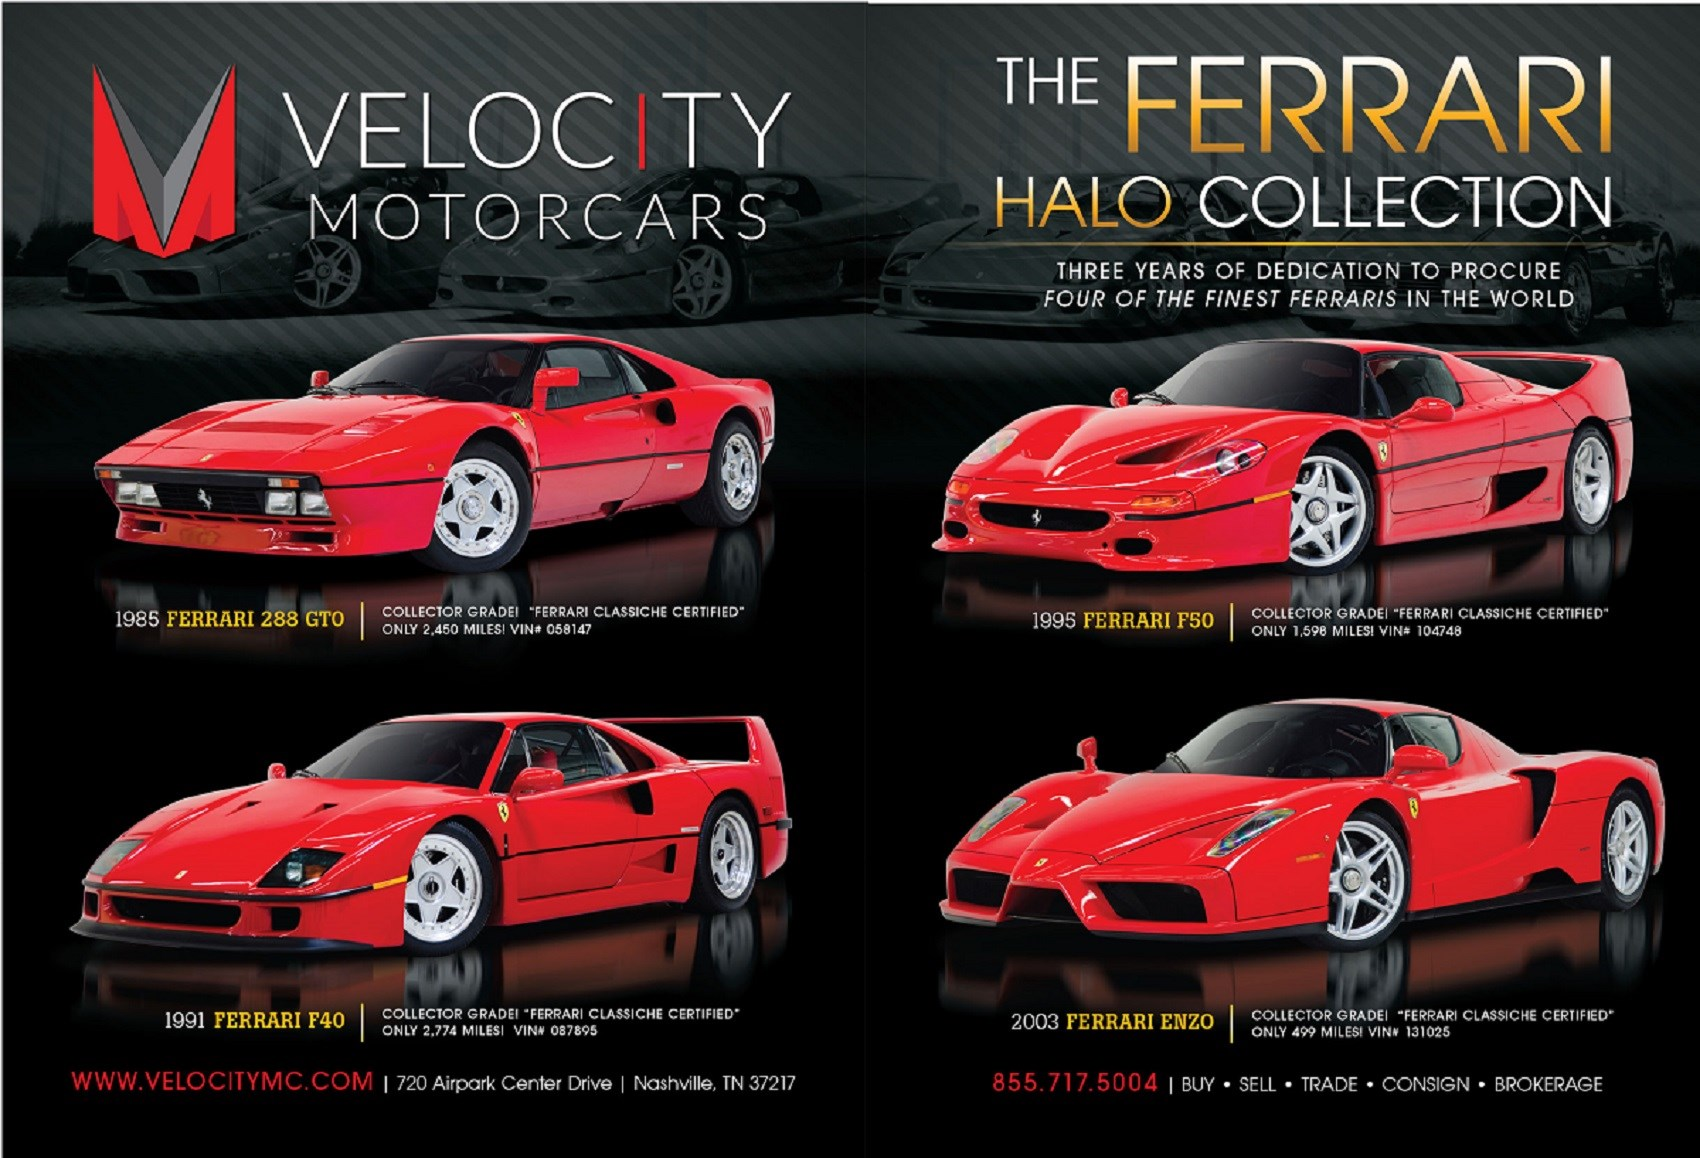 Velocity Motorcars Halo Collection